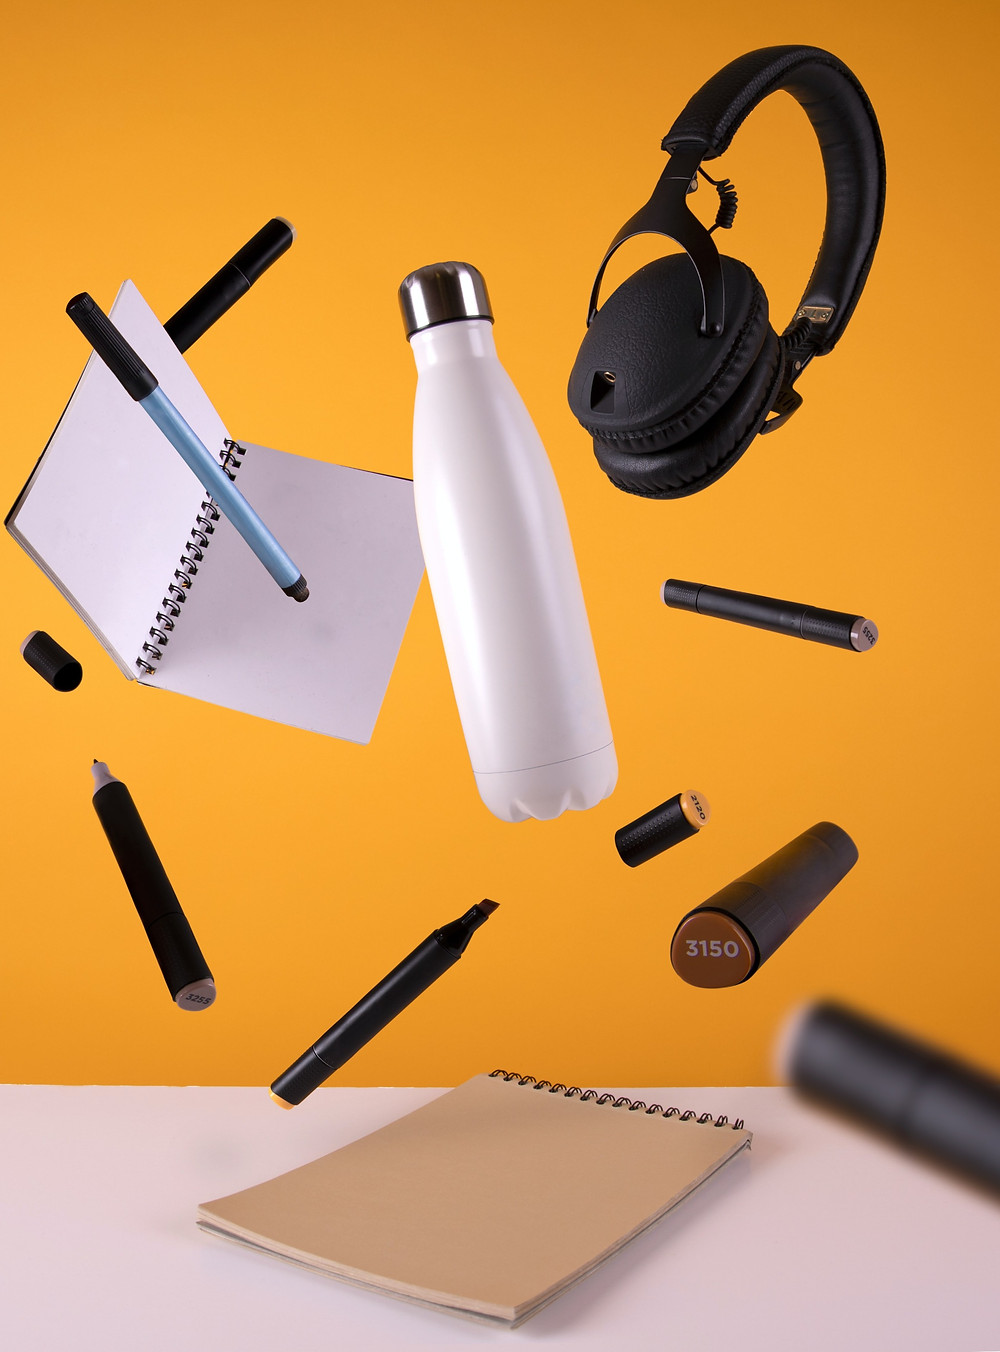 Promotional Products for your virtual event.